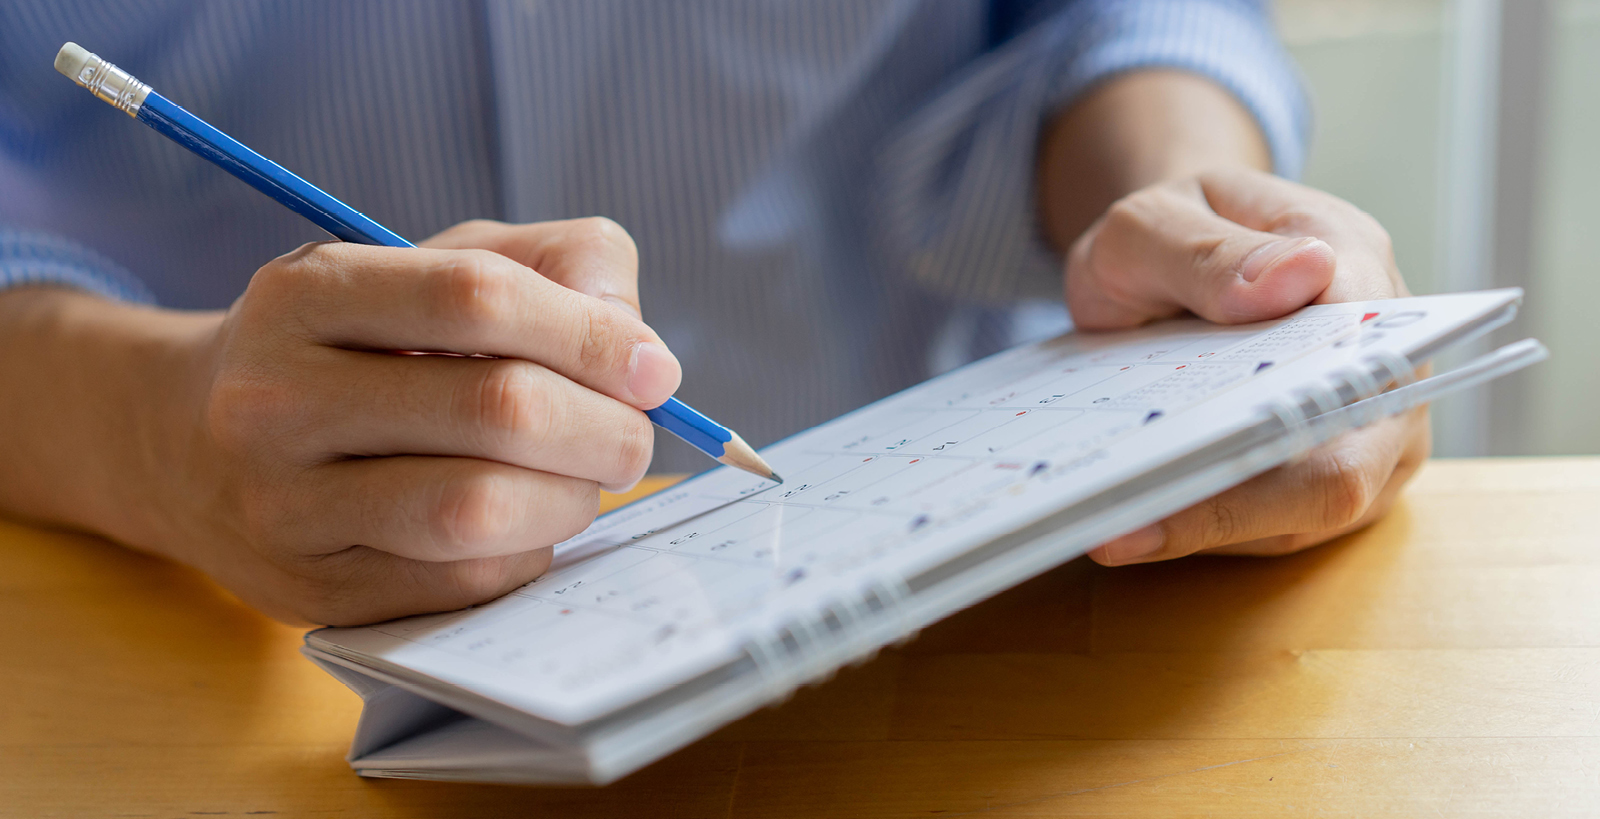 A man holds a desktop calendar in his hands, and is writing on it with a blue pencil